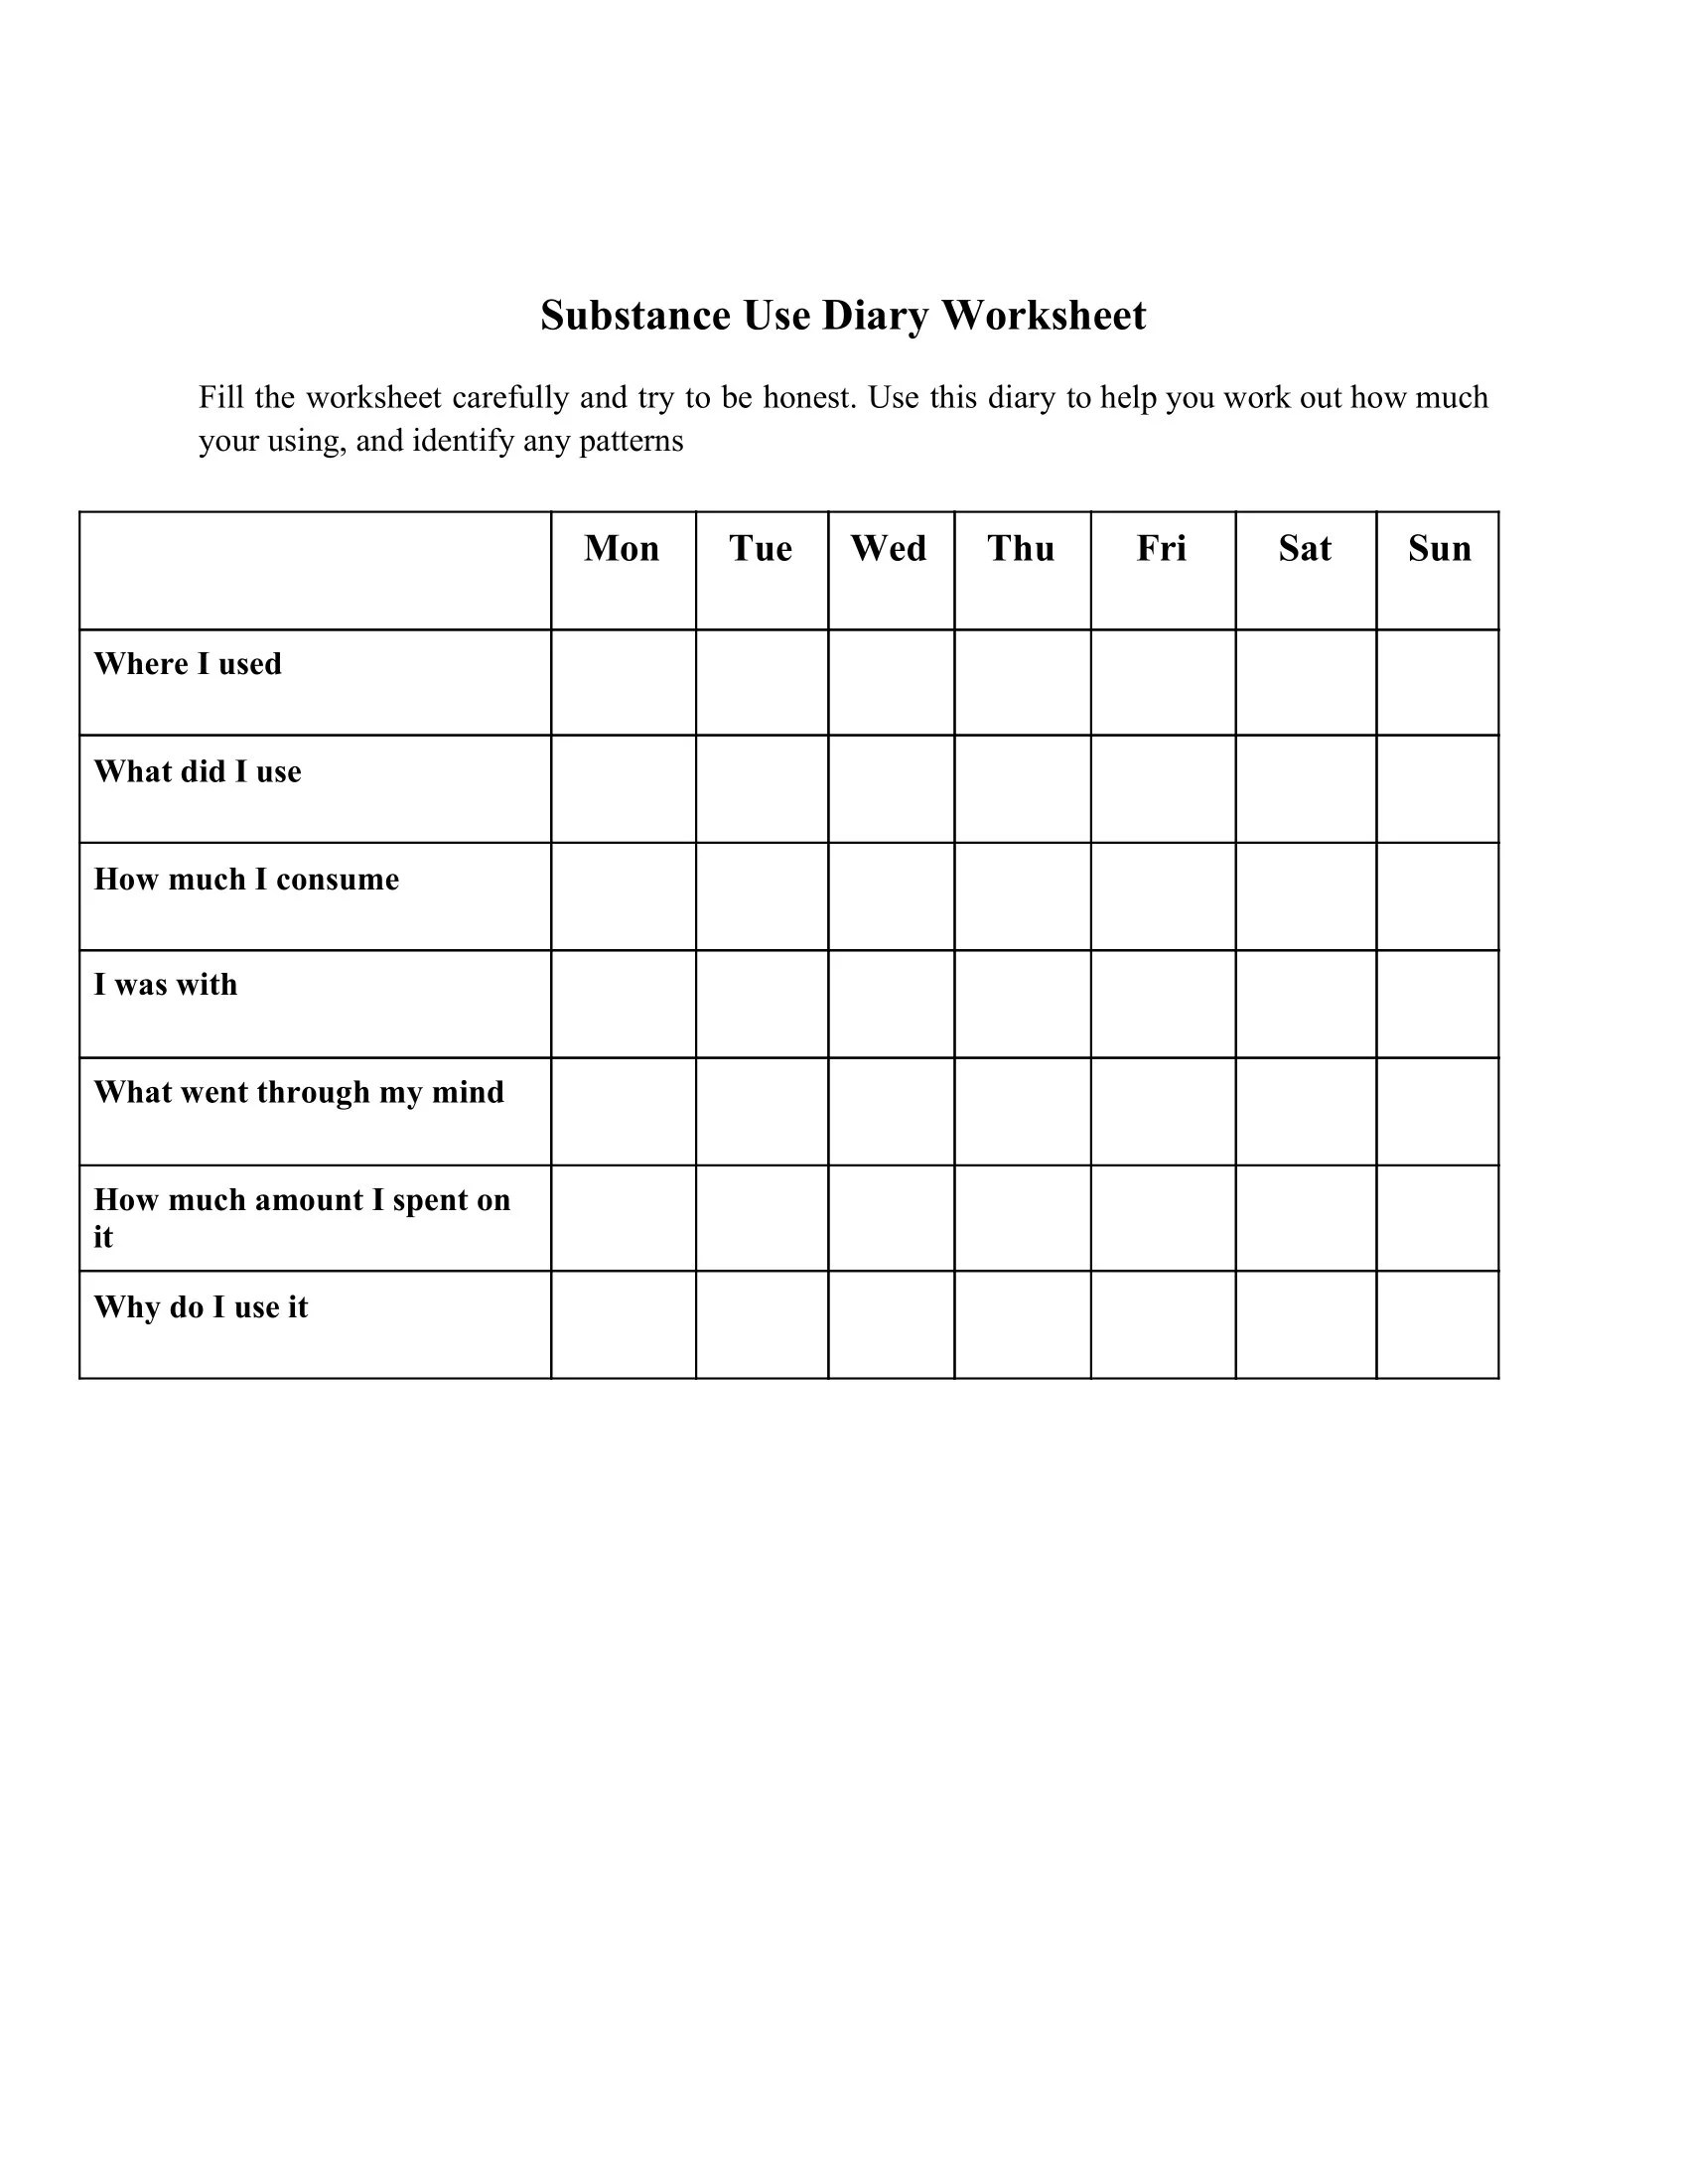 Substance Use Diary Worksheet